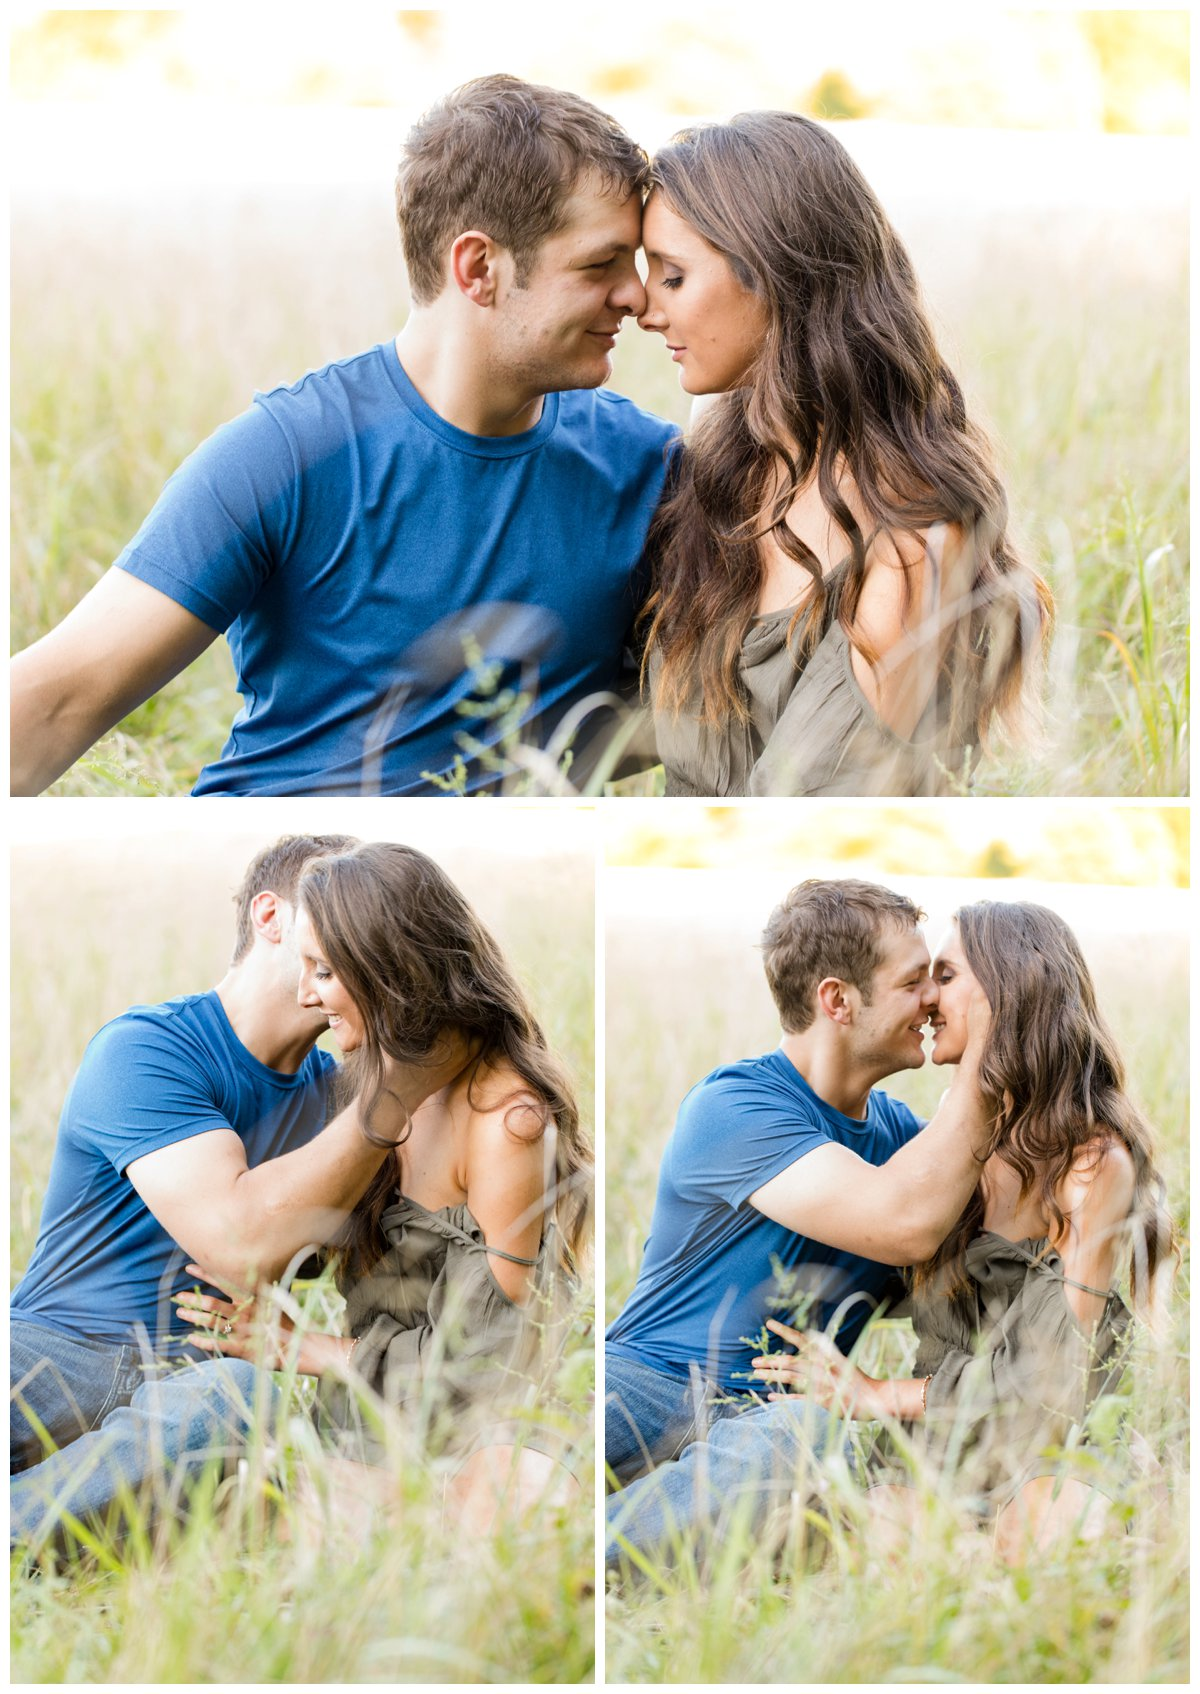 Jerusalem Mills Bohemian Engagement Photography sitting in the tall grass in a field while kissing.